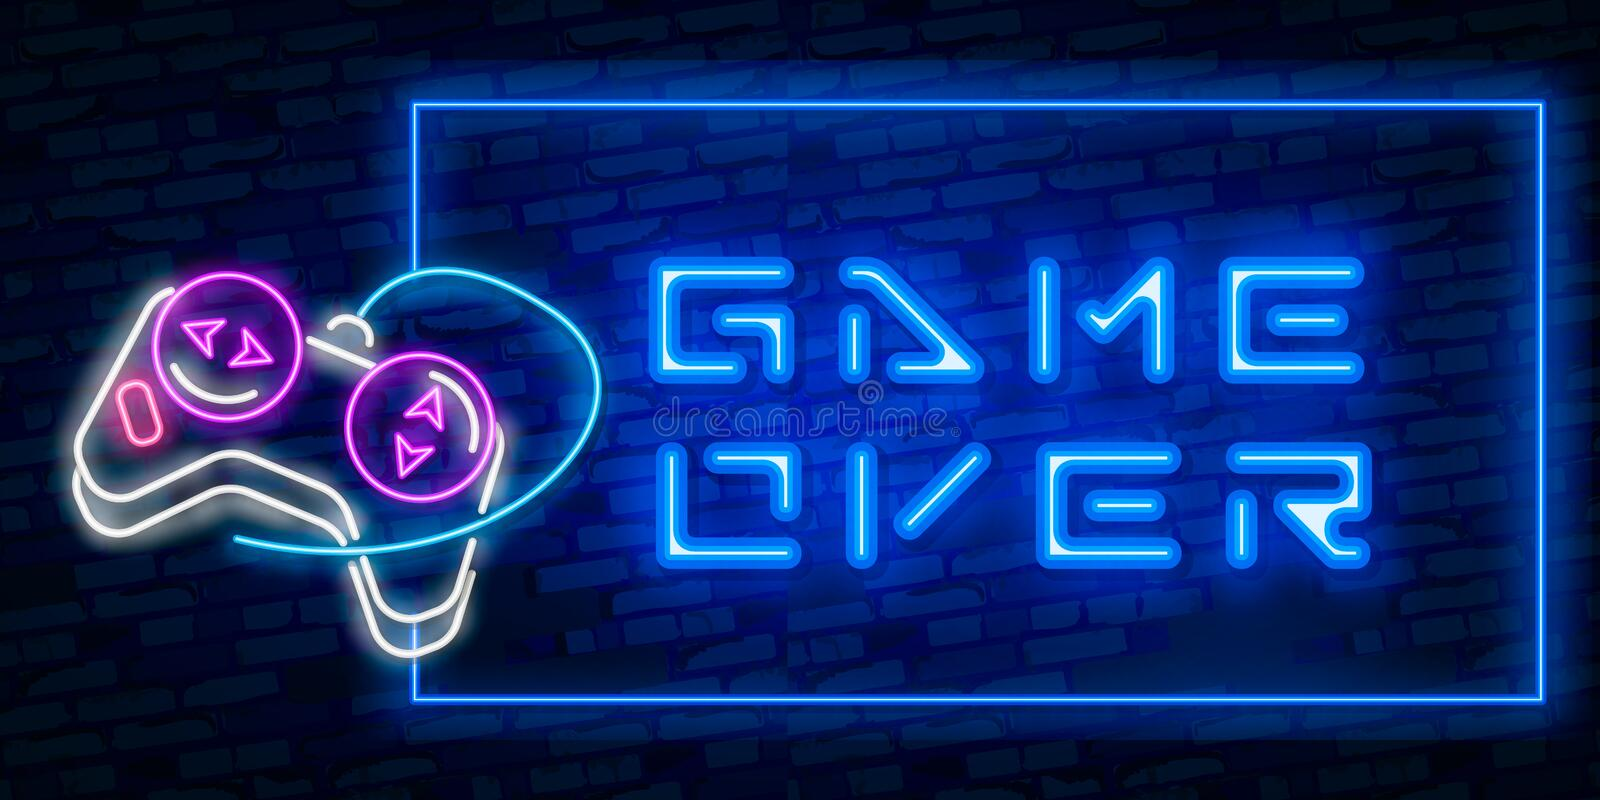 Games, over neon text with controller. Technology and entertainment concept. Advertisement design. Night bright neon sign, vector illustration